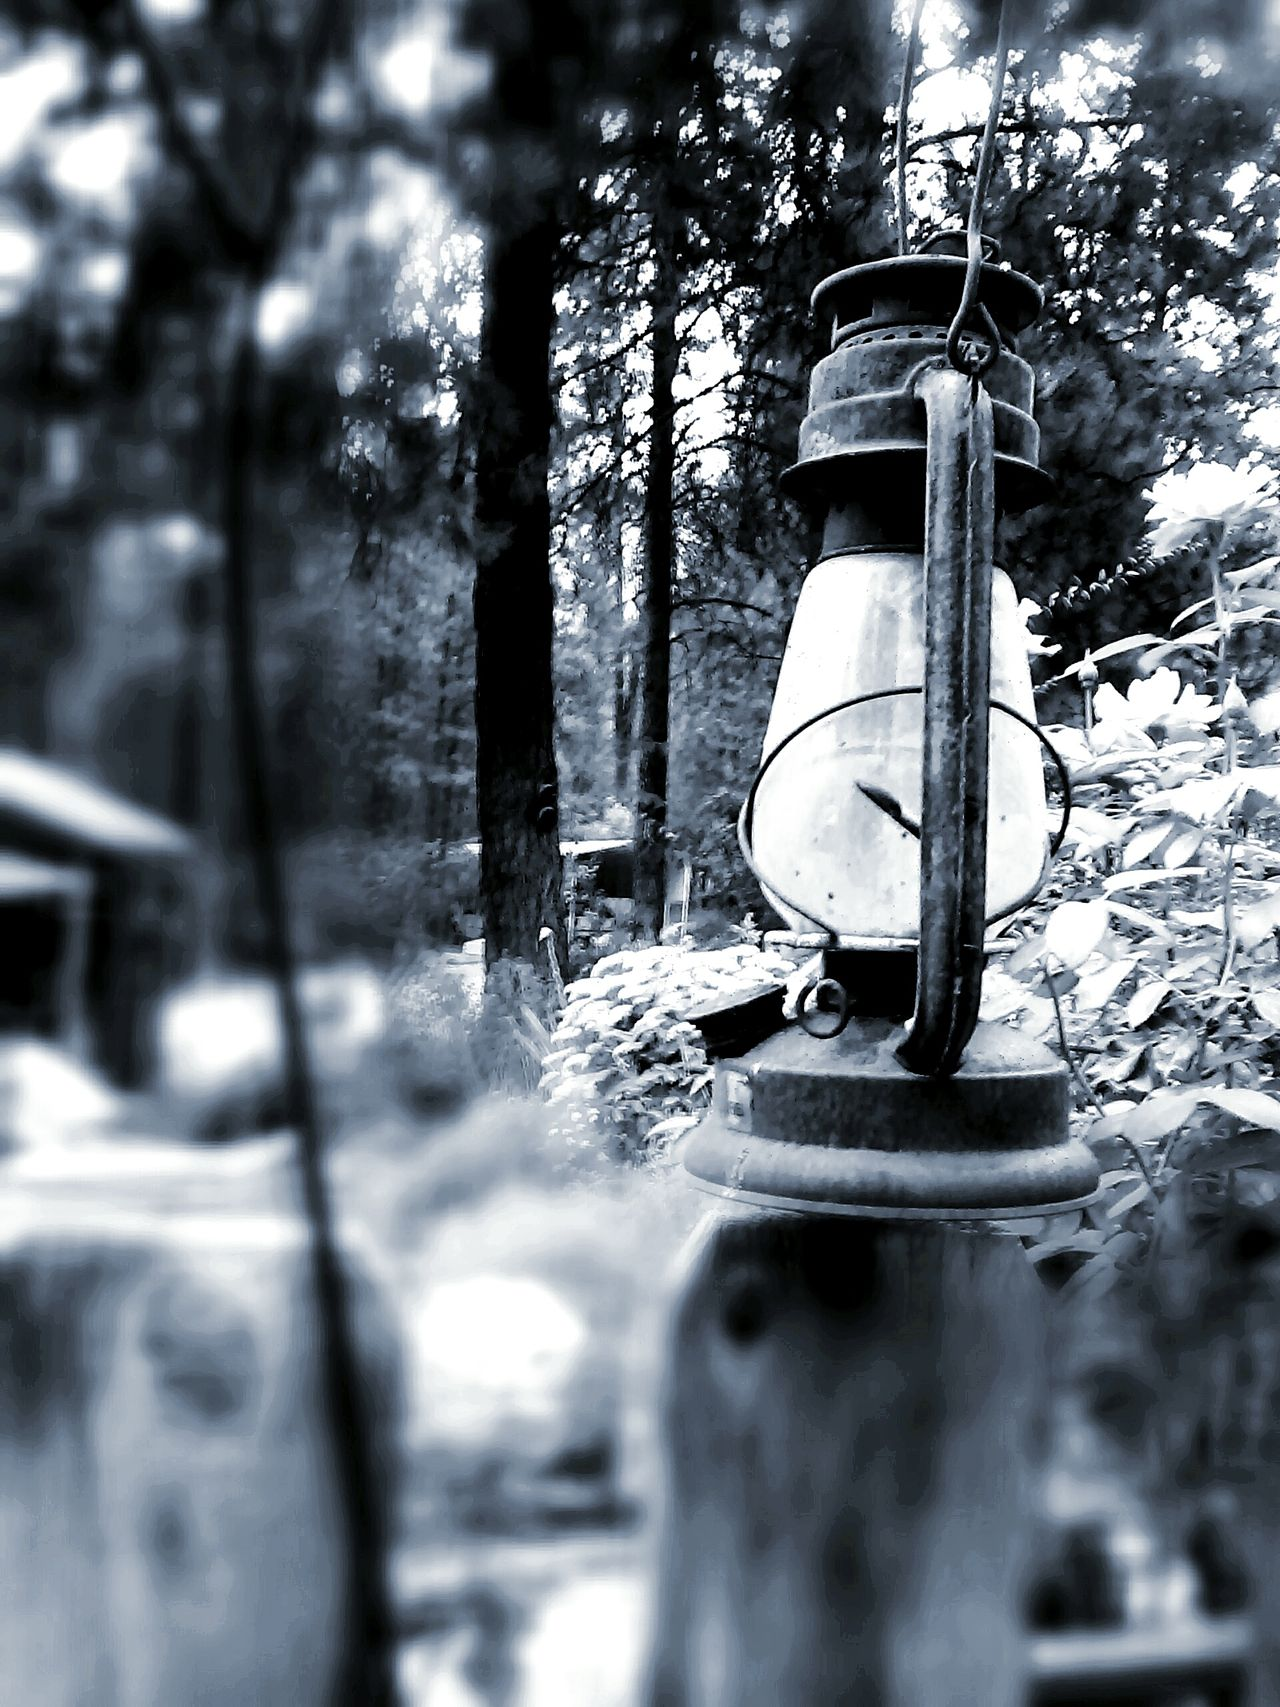 Outdoor treasure hunt. Black And White Photography Black And White Collection  Lantern Schwarzweiß Svartvitt Noir Et Blanc Fast Through A Slow-motion Landscape Photography Photographic Love Antique